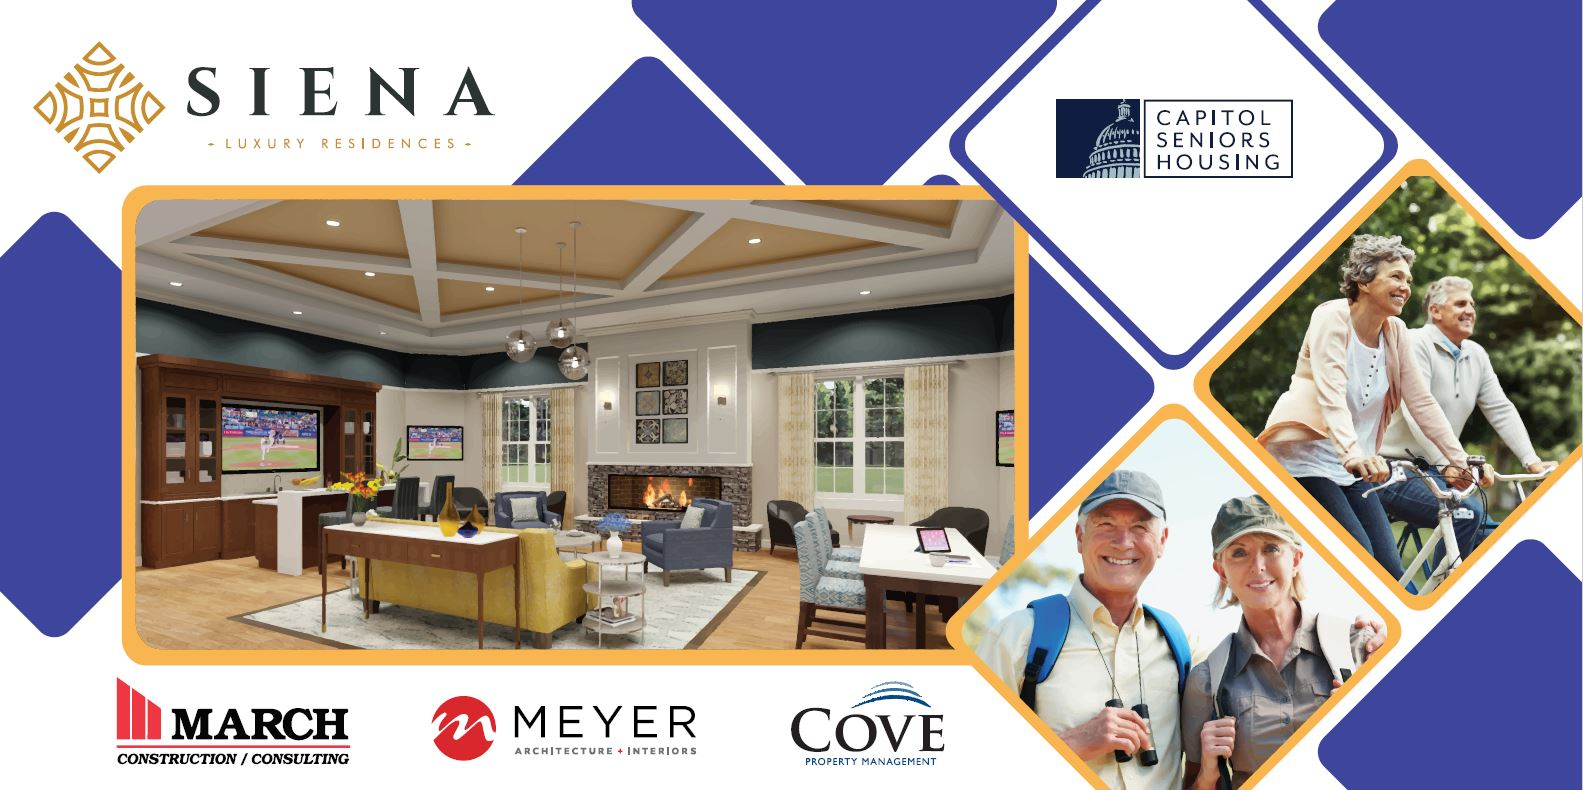 CSH Siena in cinnaminson, new Jersey groundbreaking ceremony March Construction, Meyer Architecture, Capitol Seniors Housing, & Cove